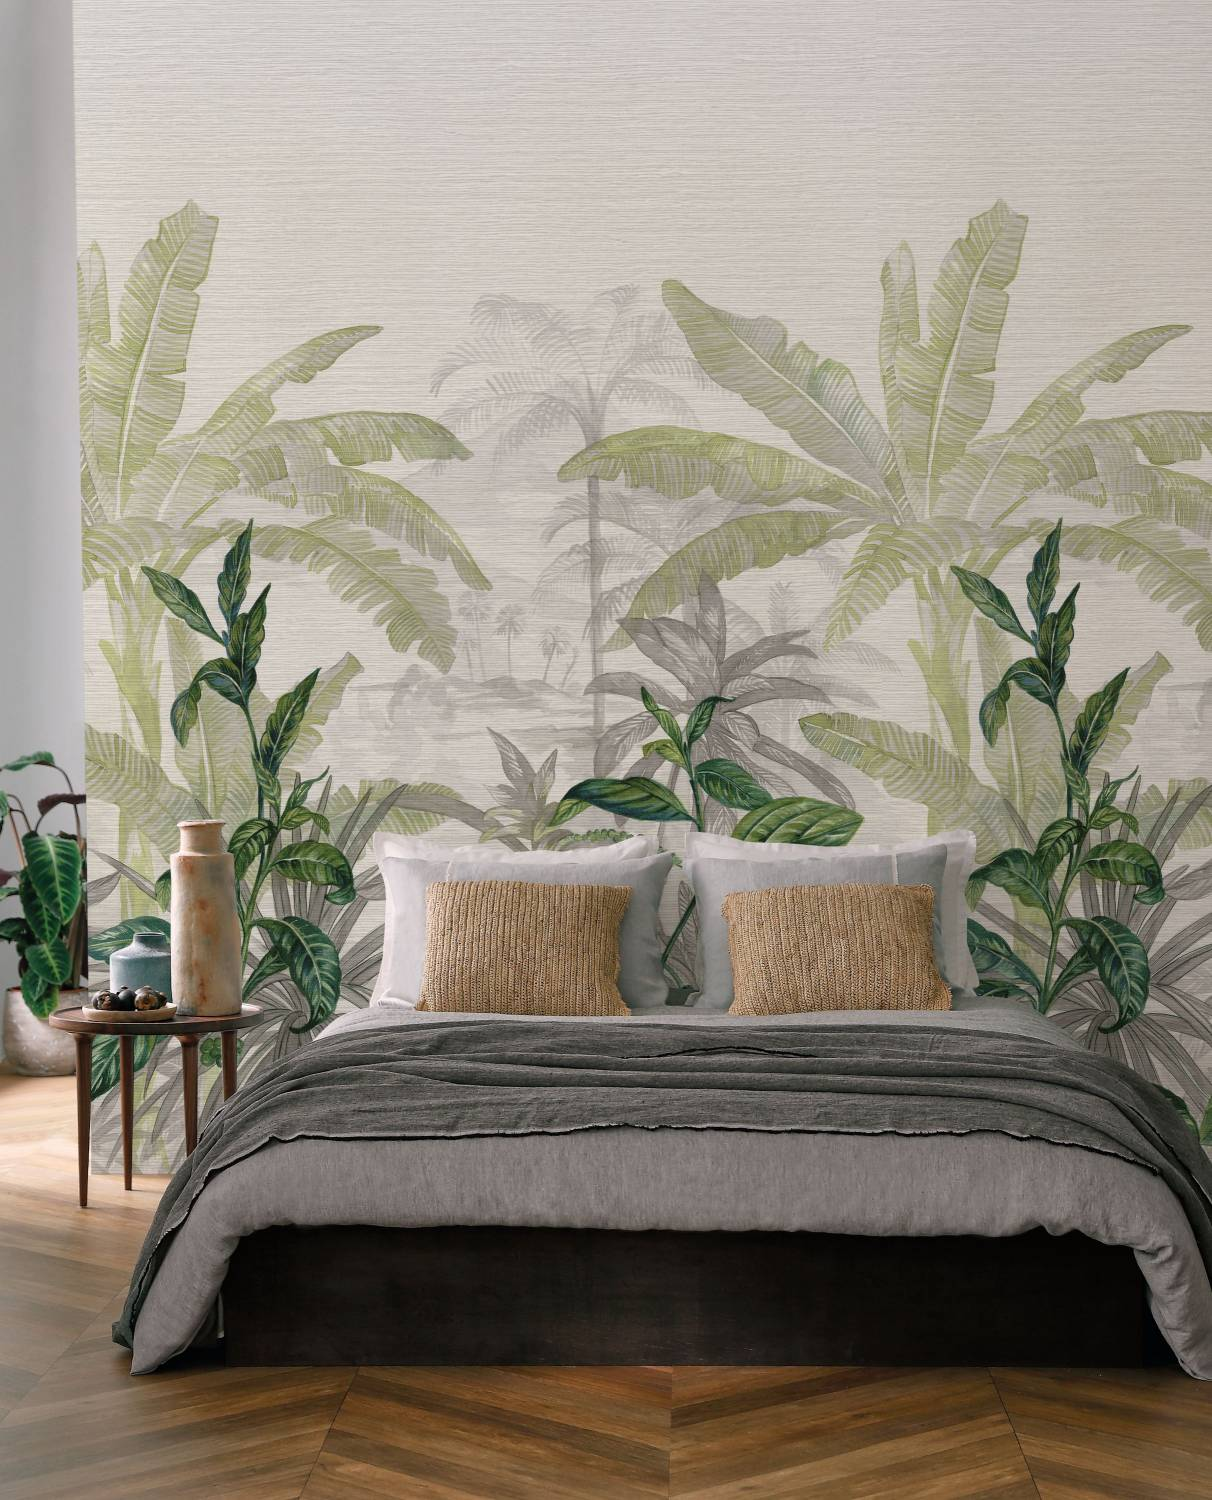 Mural/Painel Tropical Manille -Olea